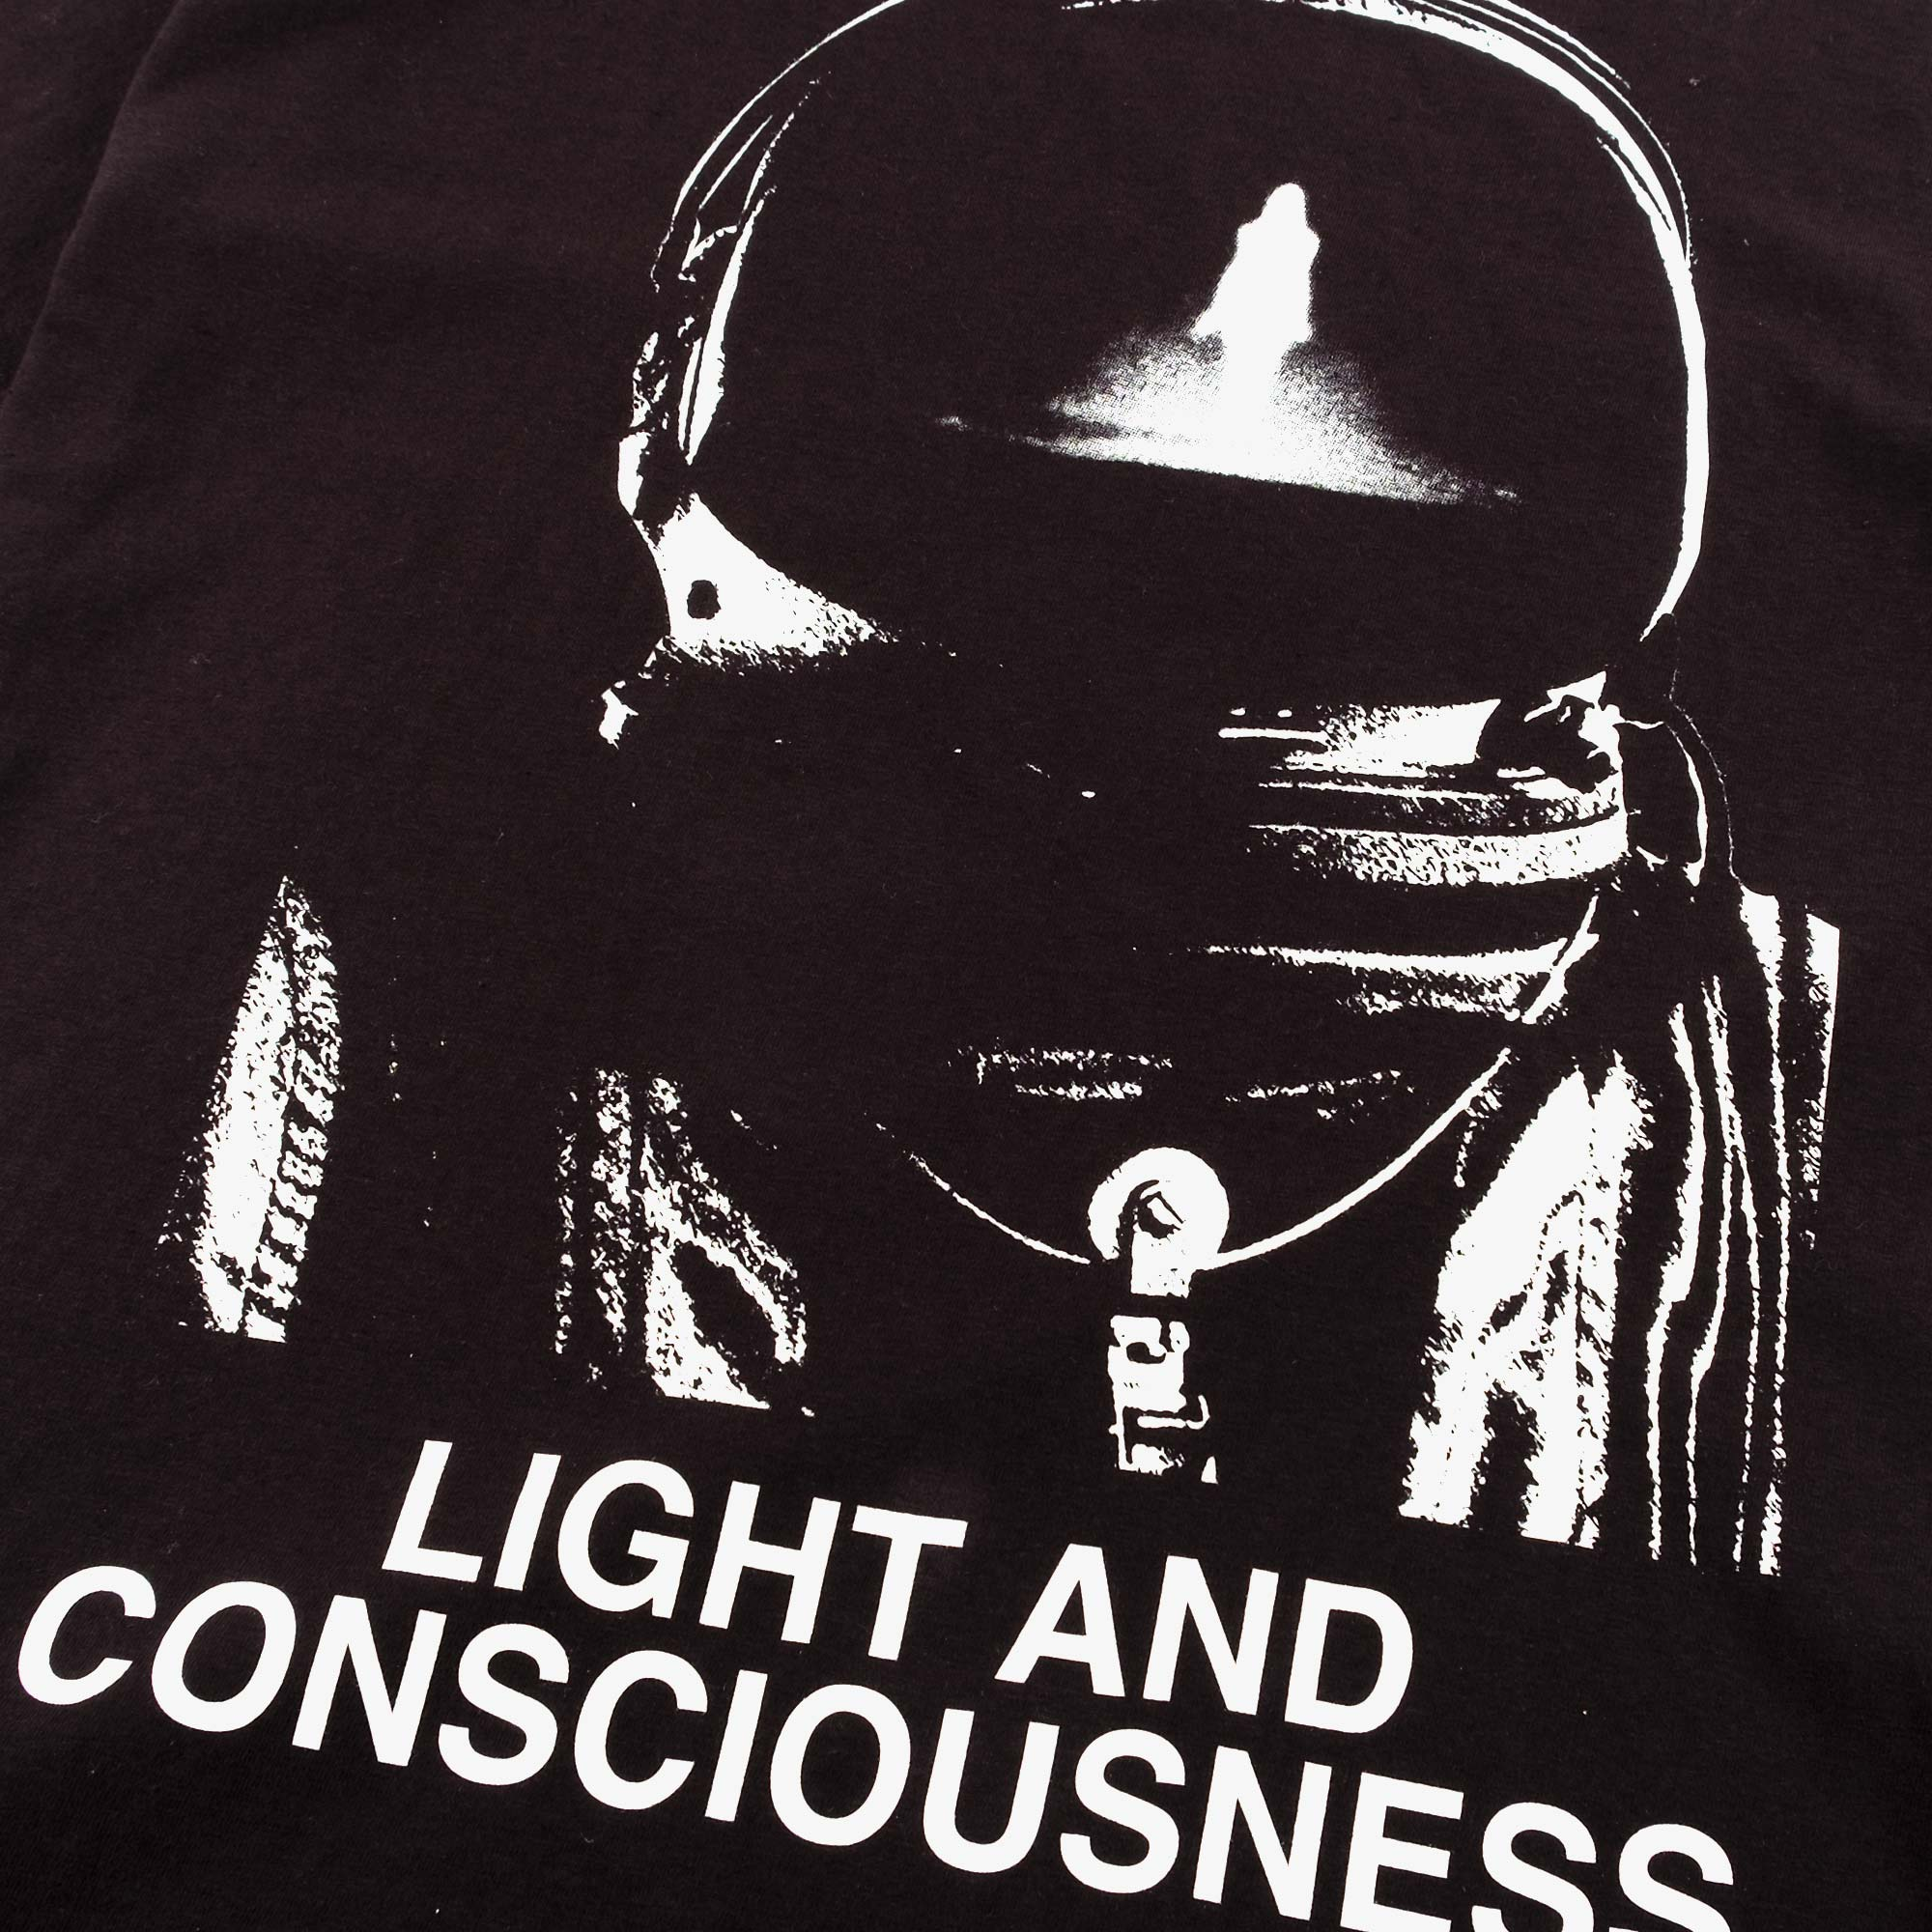 Undercover Oversized Light and Consciousness Tee UC1A4893-2 - Black 2